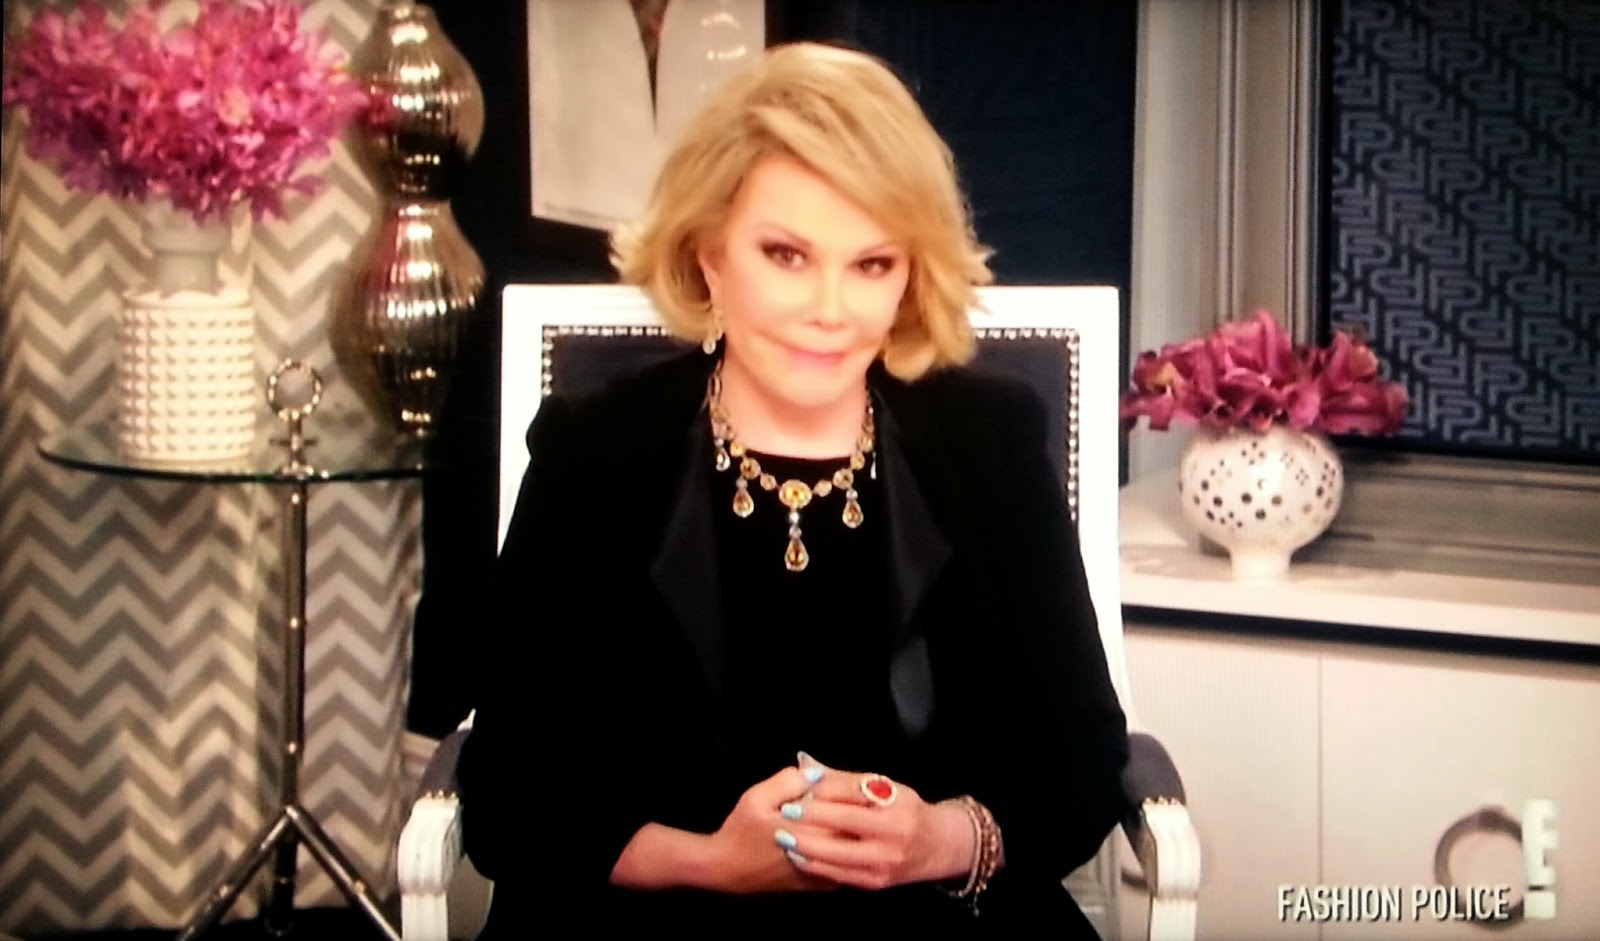 Fashion Police Joan Rivers Episodes Joan Rivers becomes emotional